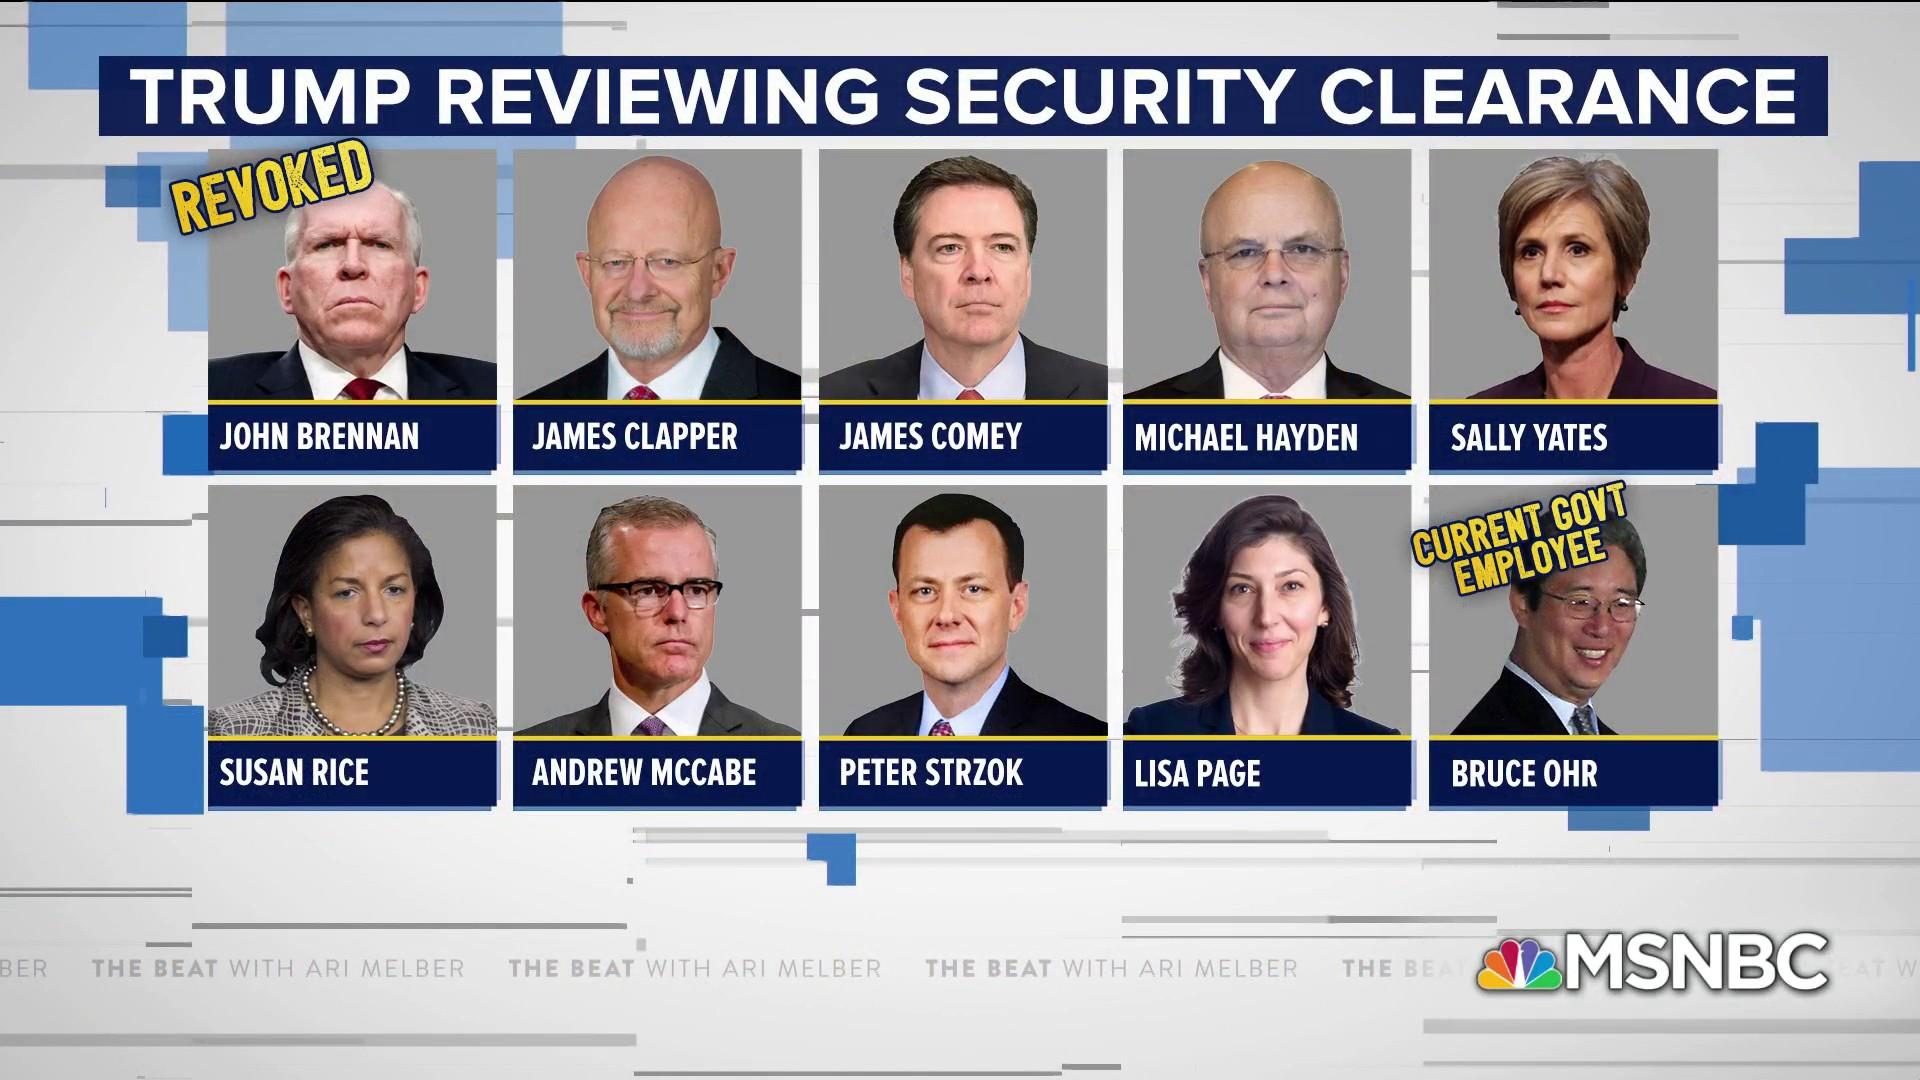 Evelyn Farkas: Trump is weaponizing security clearances